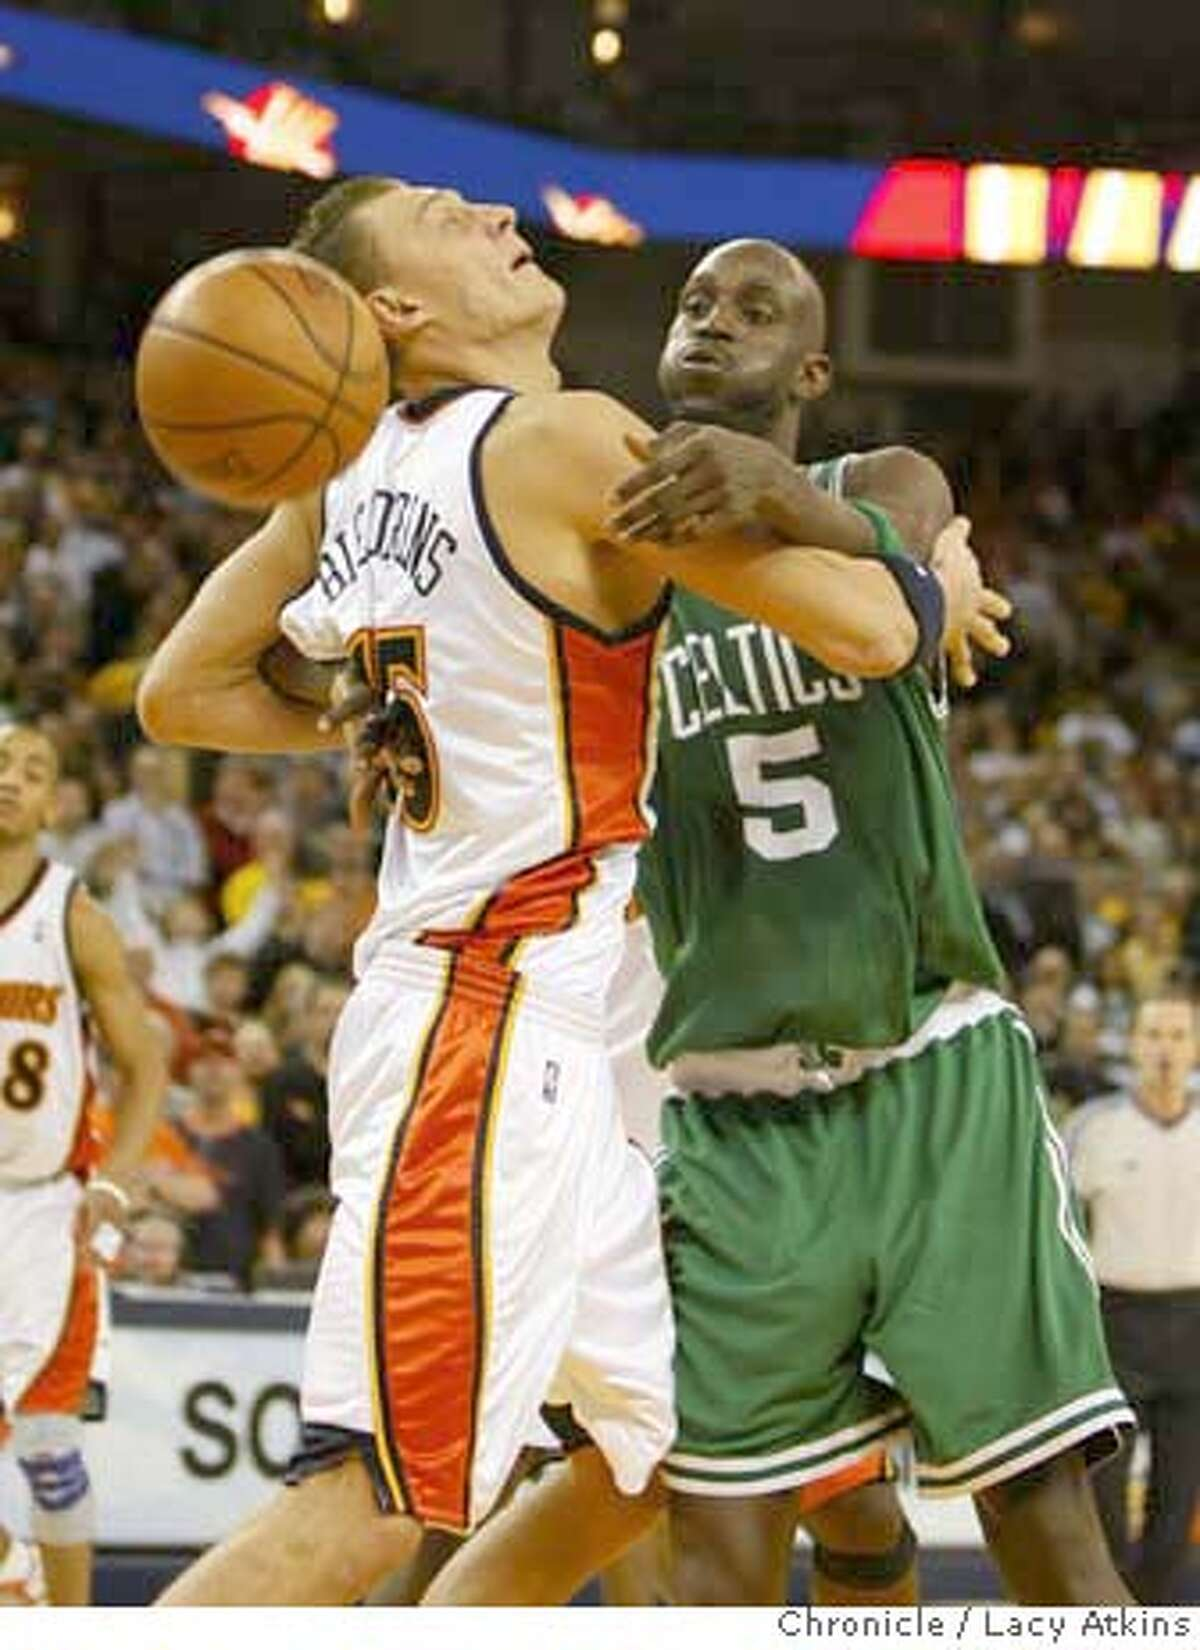 Golden State Warriors Andris Biedrins and Boston Celtics Kevin Garnett fight for the ball at the end of the game, Wednesday Feb. 20, 2008 in Oakland, Ca.( Lacy Atkins / San Francisco Chronicle) MANDATORY CREDIT FOR PHOTOG AND SAN FRANCISCO CHRONICLE/NO SALES MAGS OUT